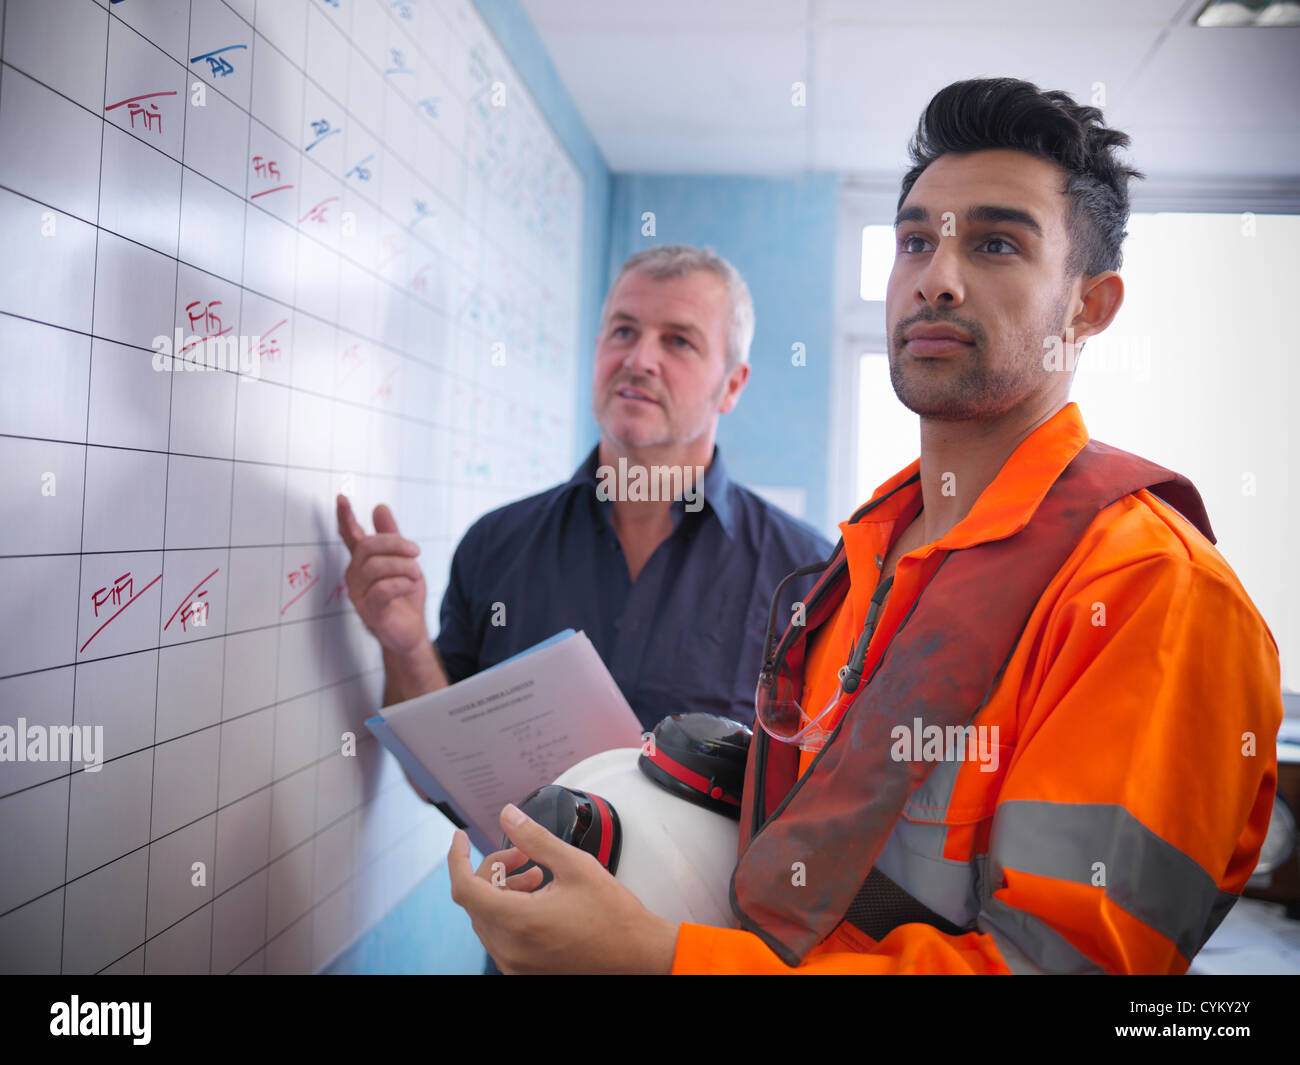 Workers planning operations on board - Stock Image